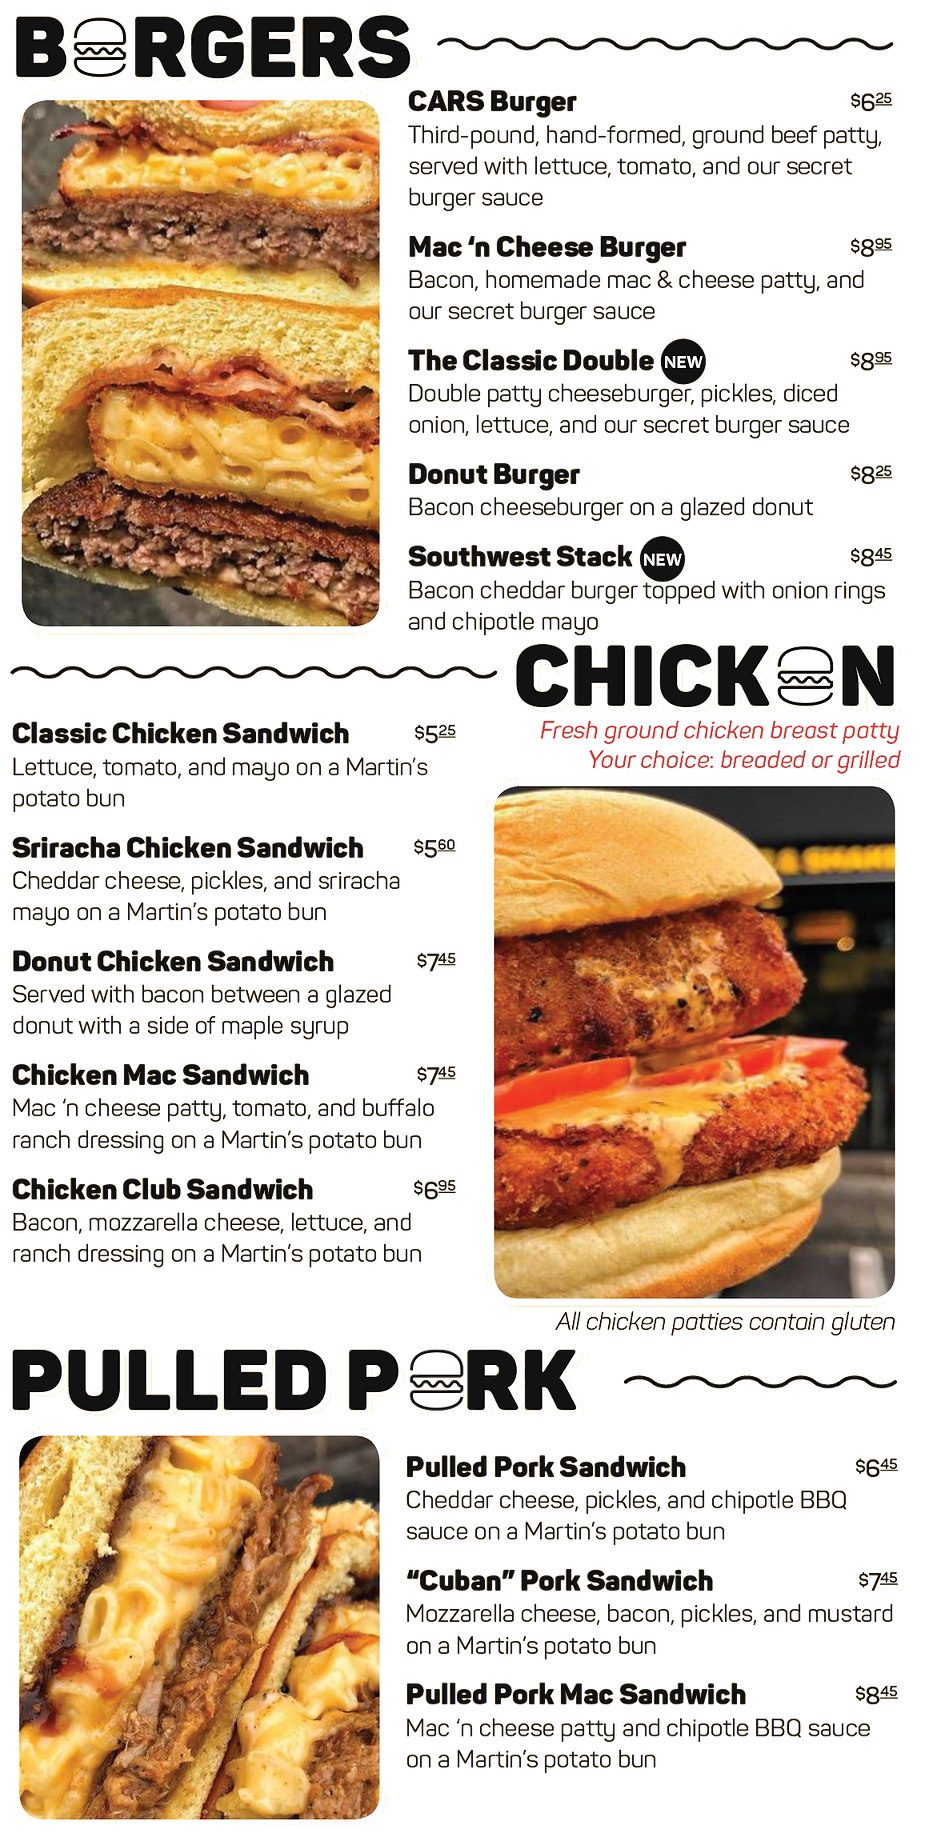 CARS Ramsey, CARS Montclair, CARS, Fat Sandwiches, Shakes, NJ, Food Near Me, Hungry, Shakes, Burgers, Chicken, Pork, Catering Ramsey, Catering Montclair, Fundraising Ideas, Post-Wedding Food, Awesome Ideas, Awesome Food NJ, Delivery, Food Delivery